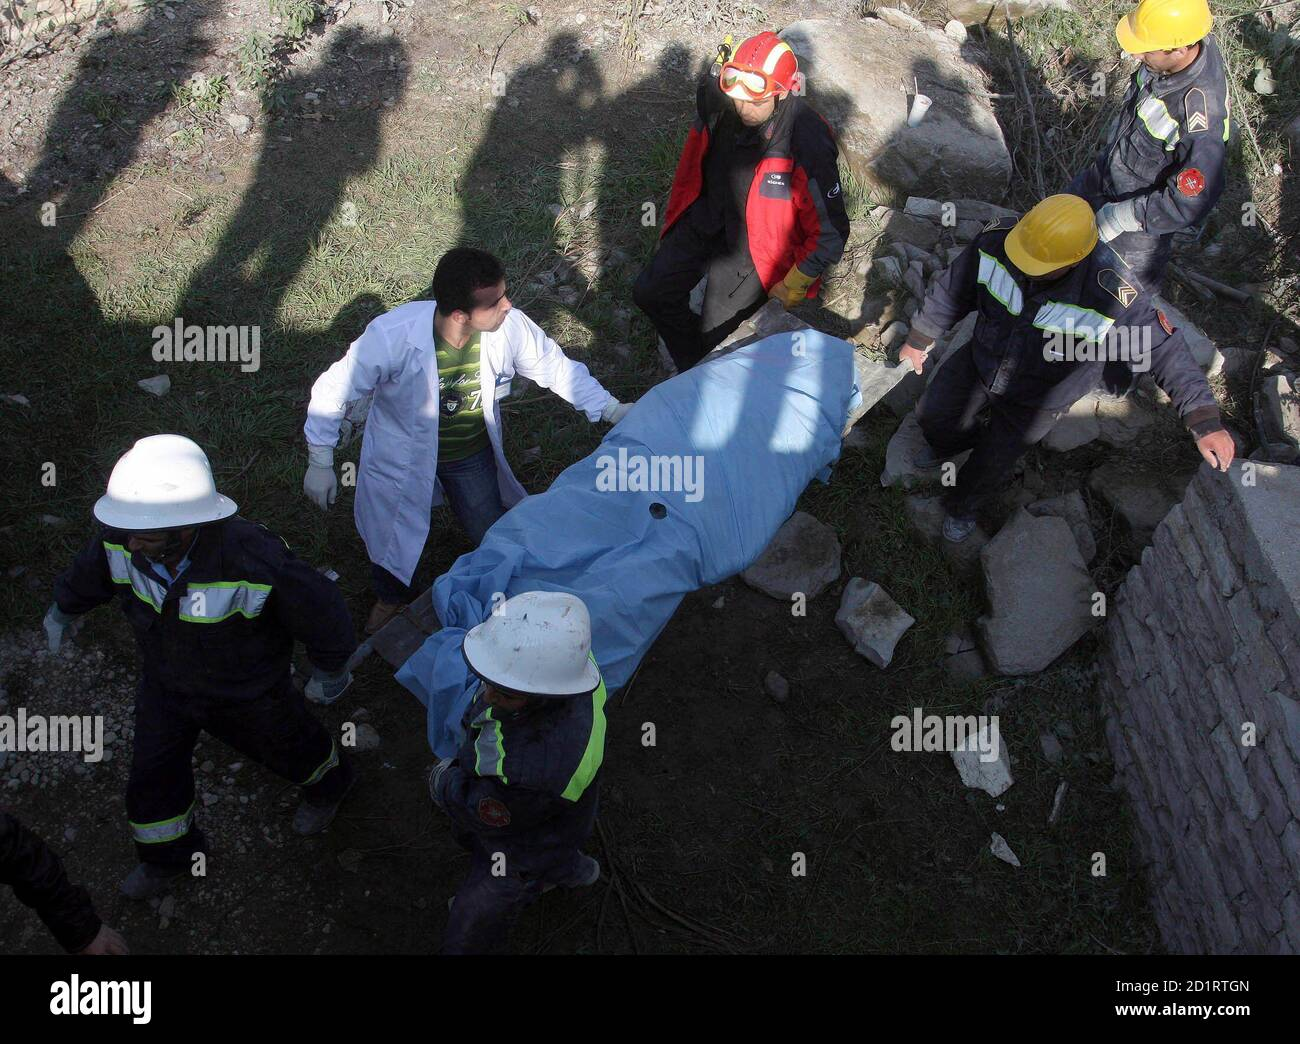 Albanian firefighters carry the body of 65-year-old Parashqevi Zoto after removing her from the rubble of a collapsed apartment building in Gjirokaster, some 250 km (156 miles) south of Tirana near the Greek border, November 10, 2008. Zoto and a young mother and her daughter were trapped when the six-storey building collapsed on Sunday, injuring four people, according to local media.       REUTERS/Arben Celi (ALBANIA) Stock Photo